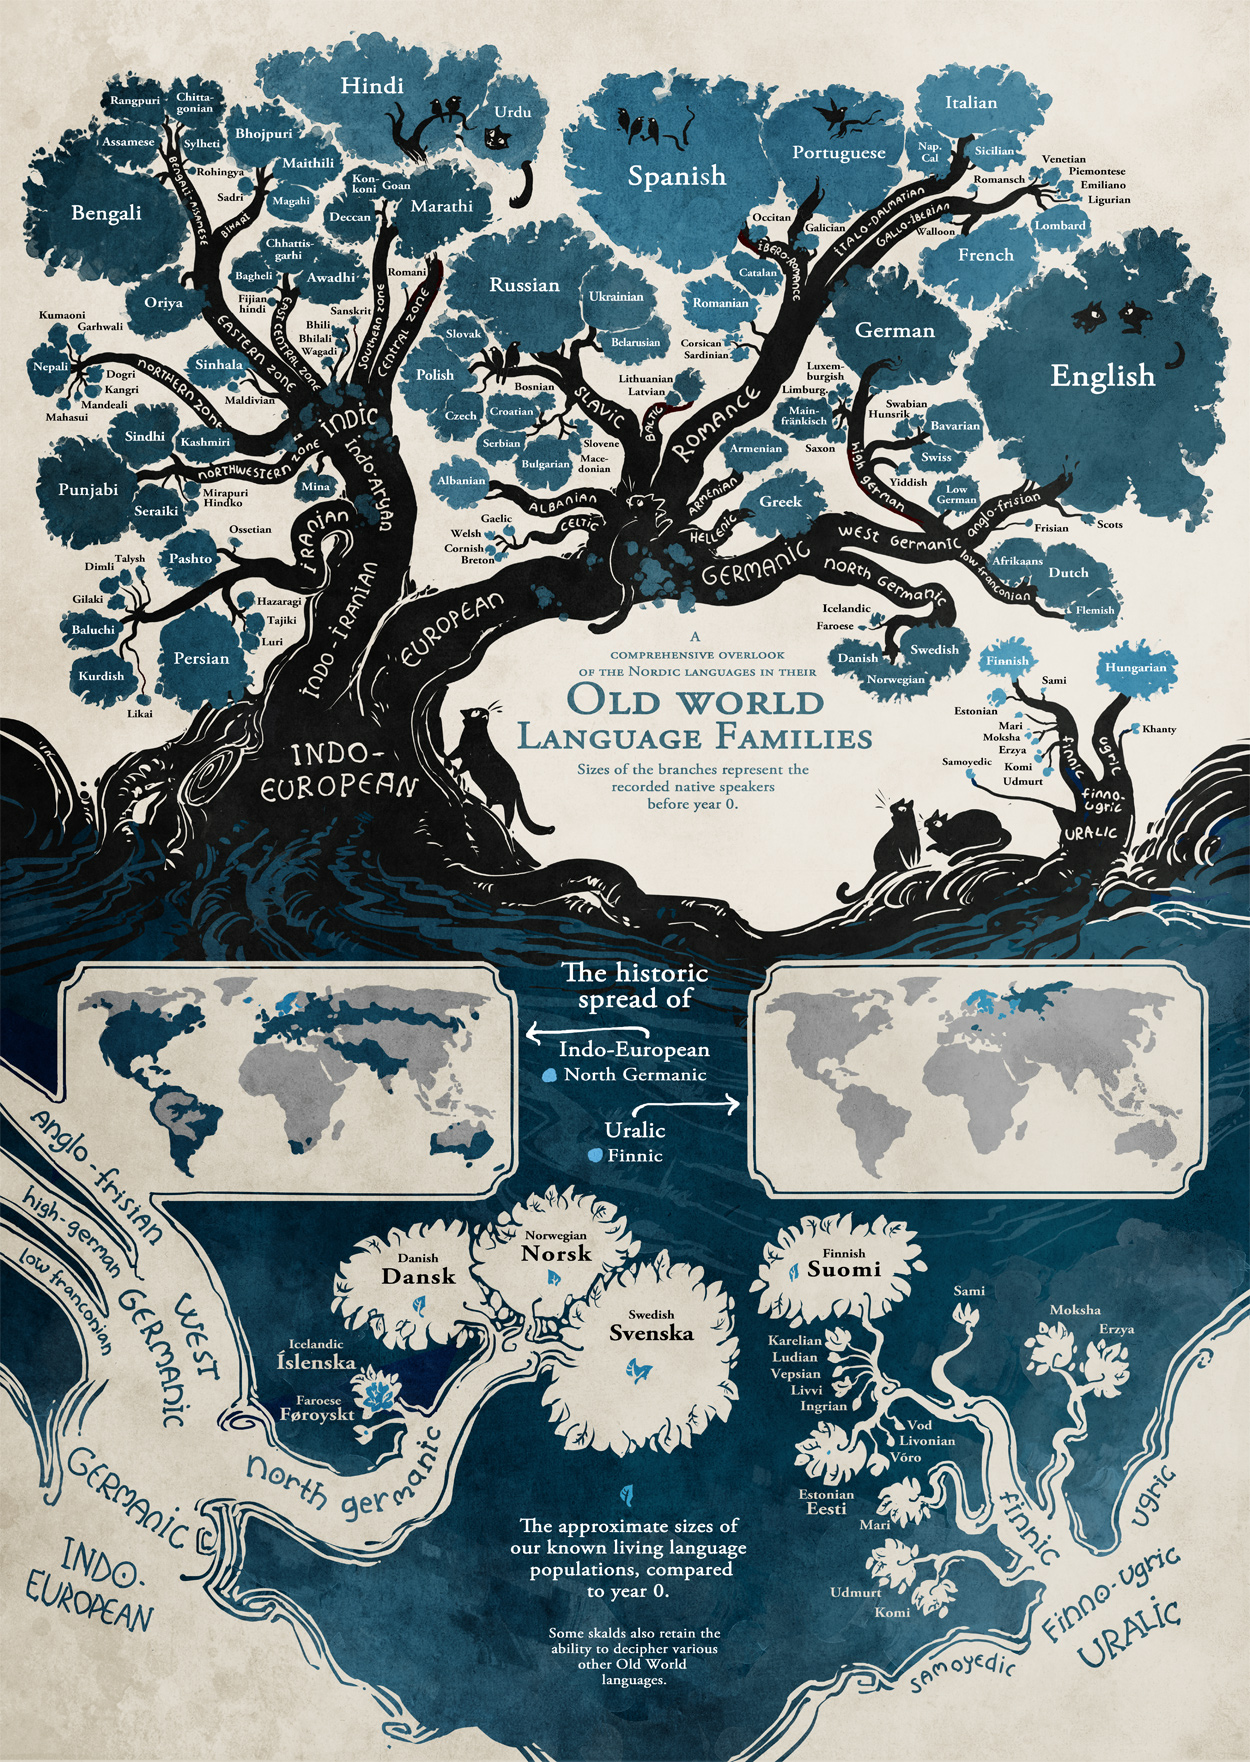 A Beautiful Language Family Tree